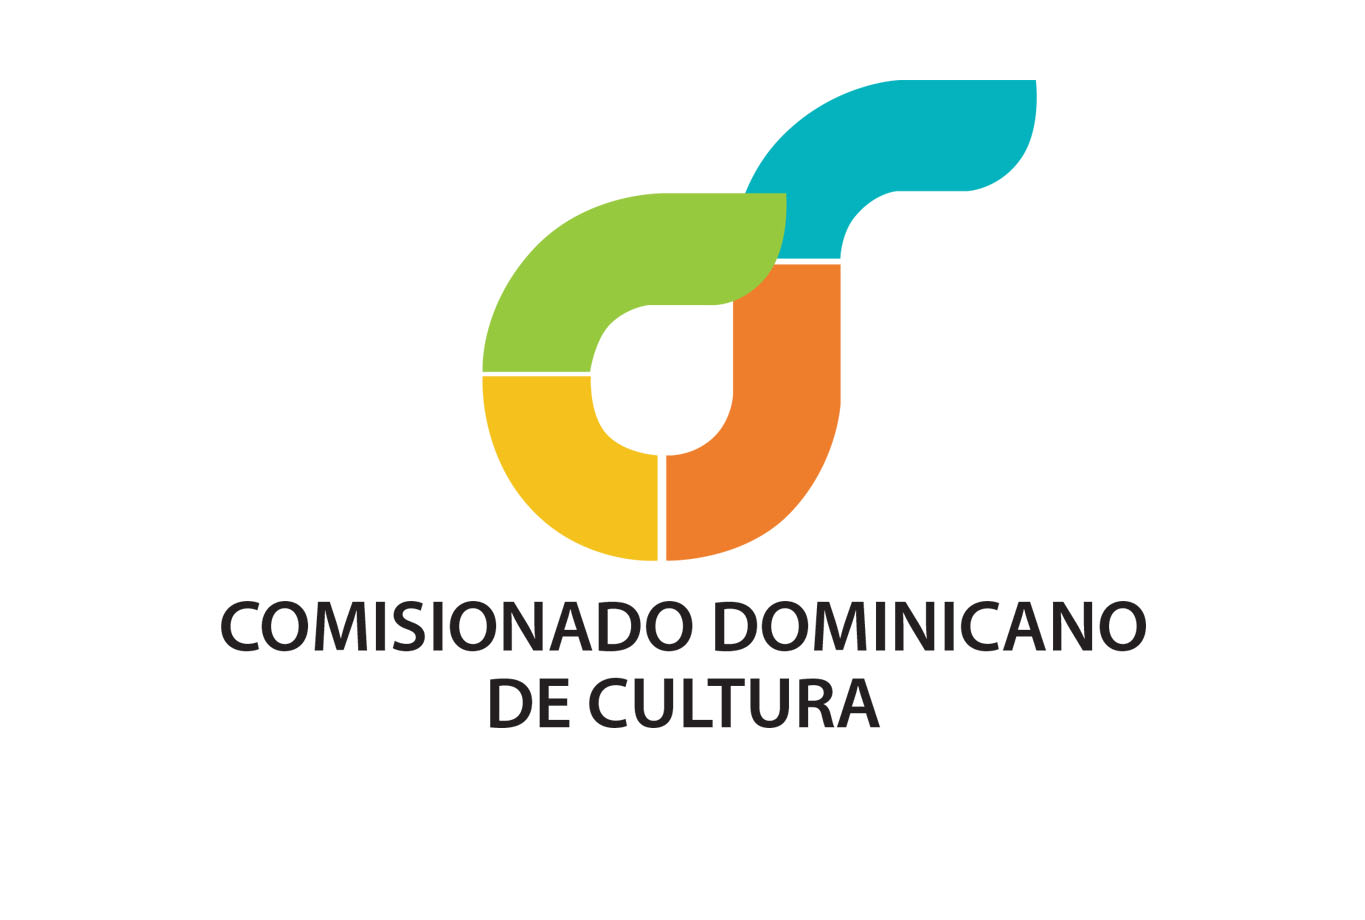 Dominican Commission of Culture